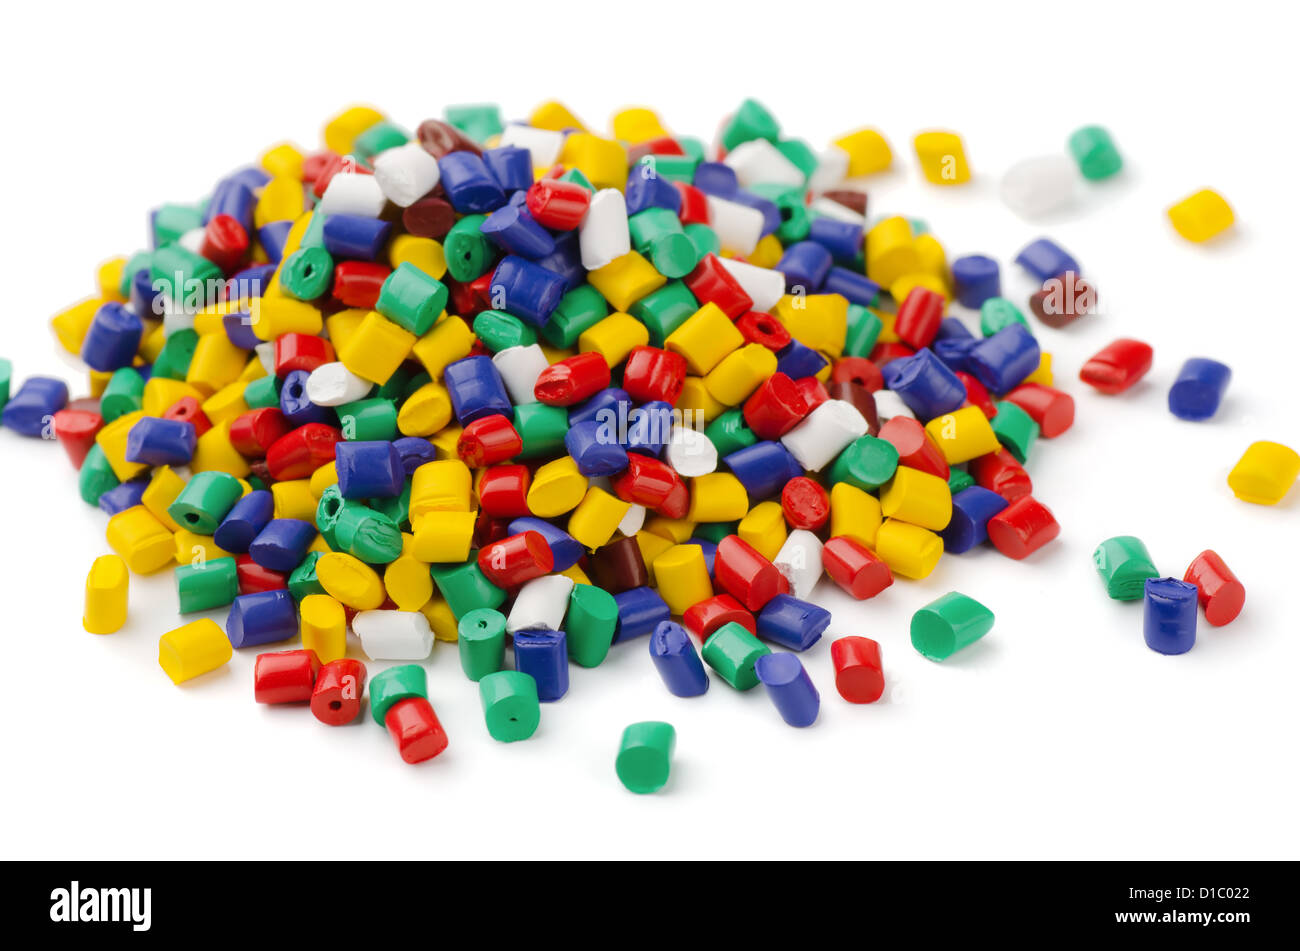 Pile of colorful plastic polymer granules isolated on white - Stock Image